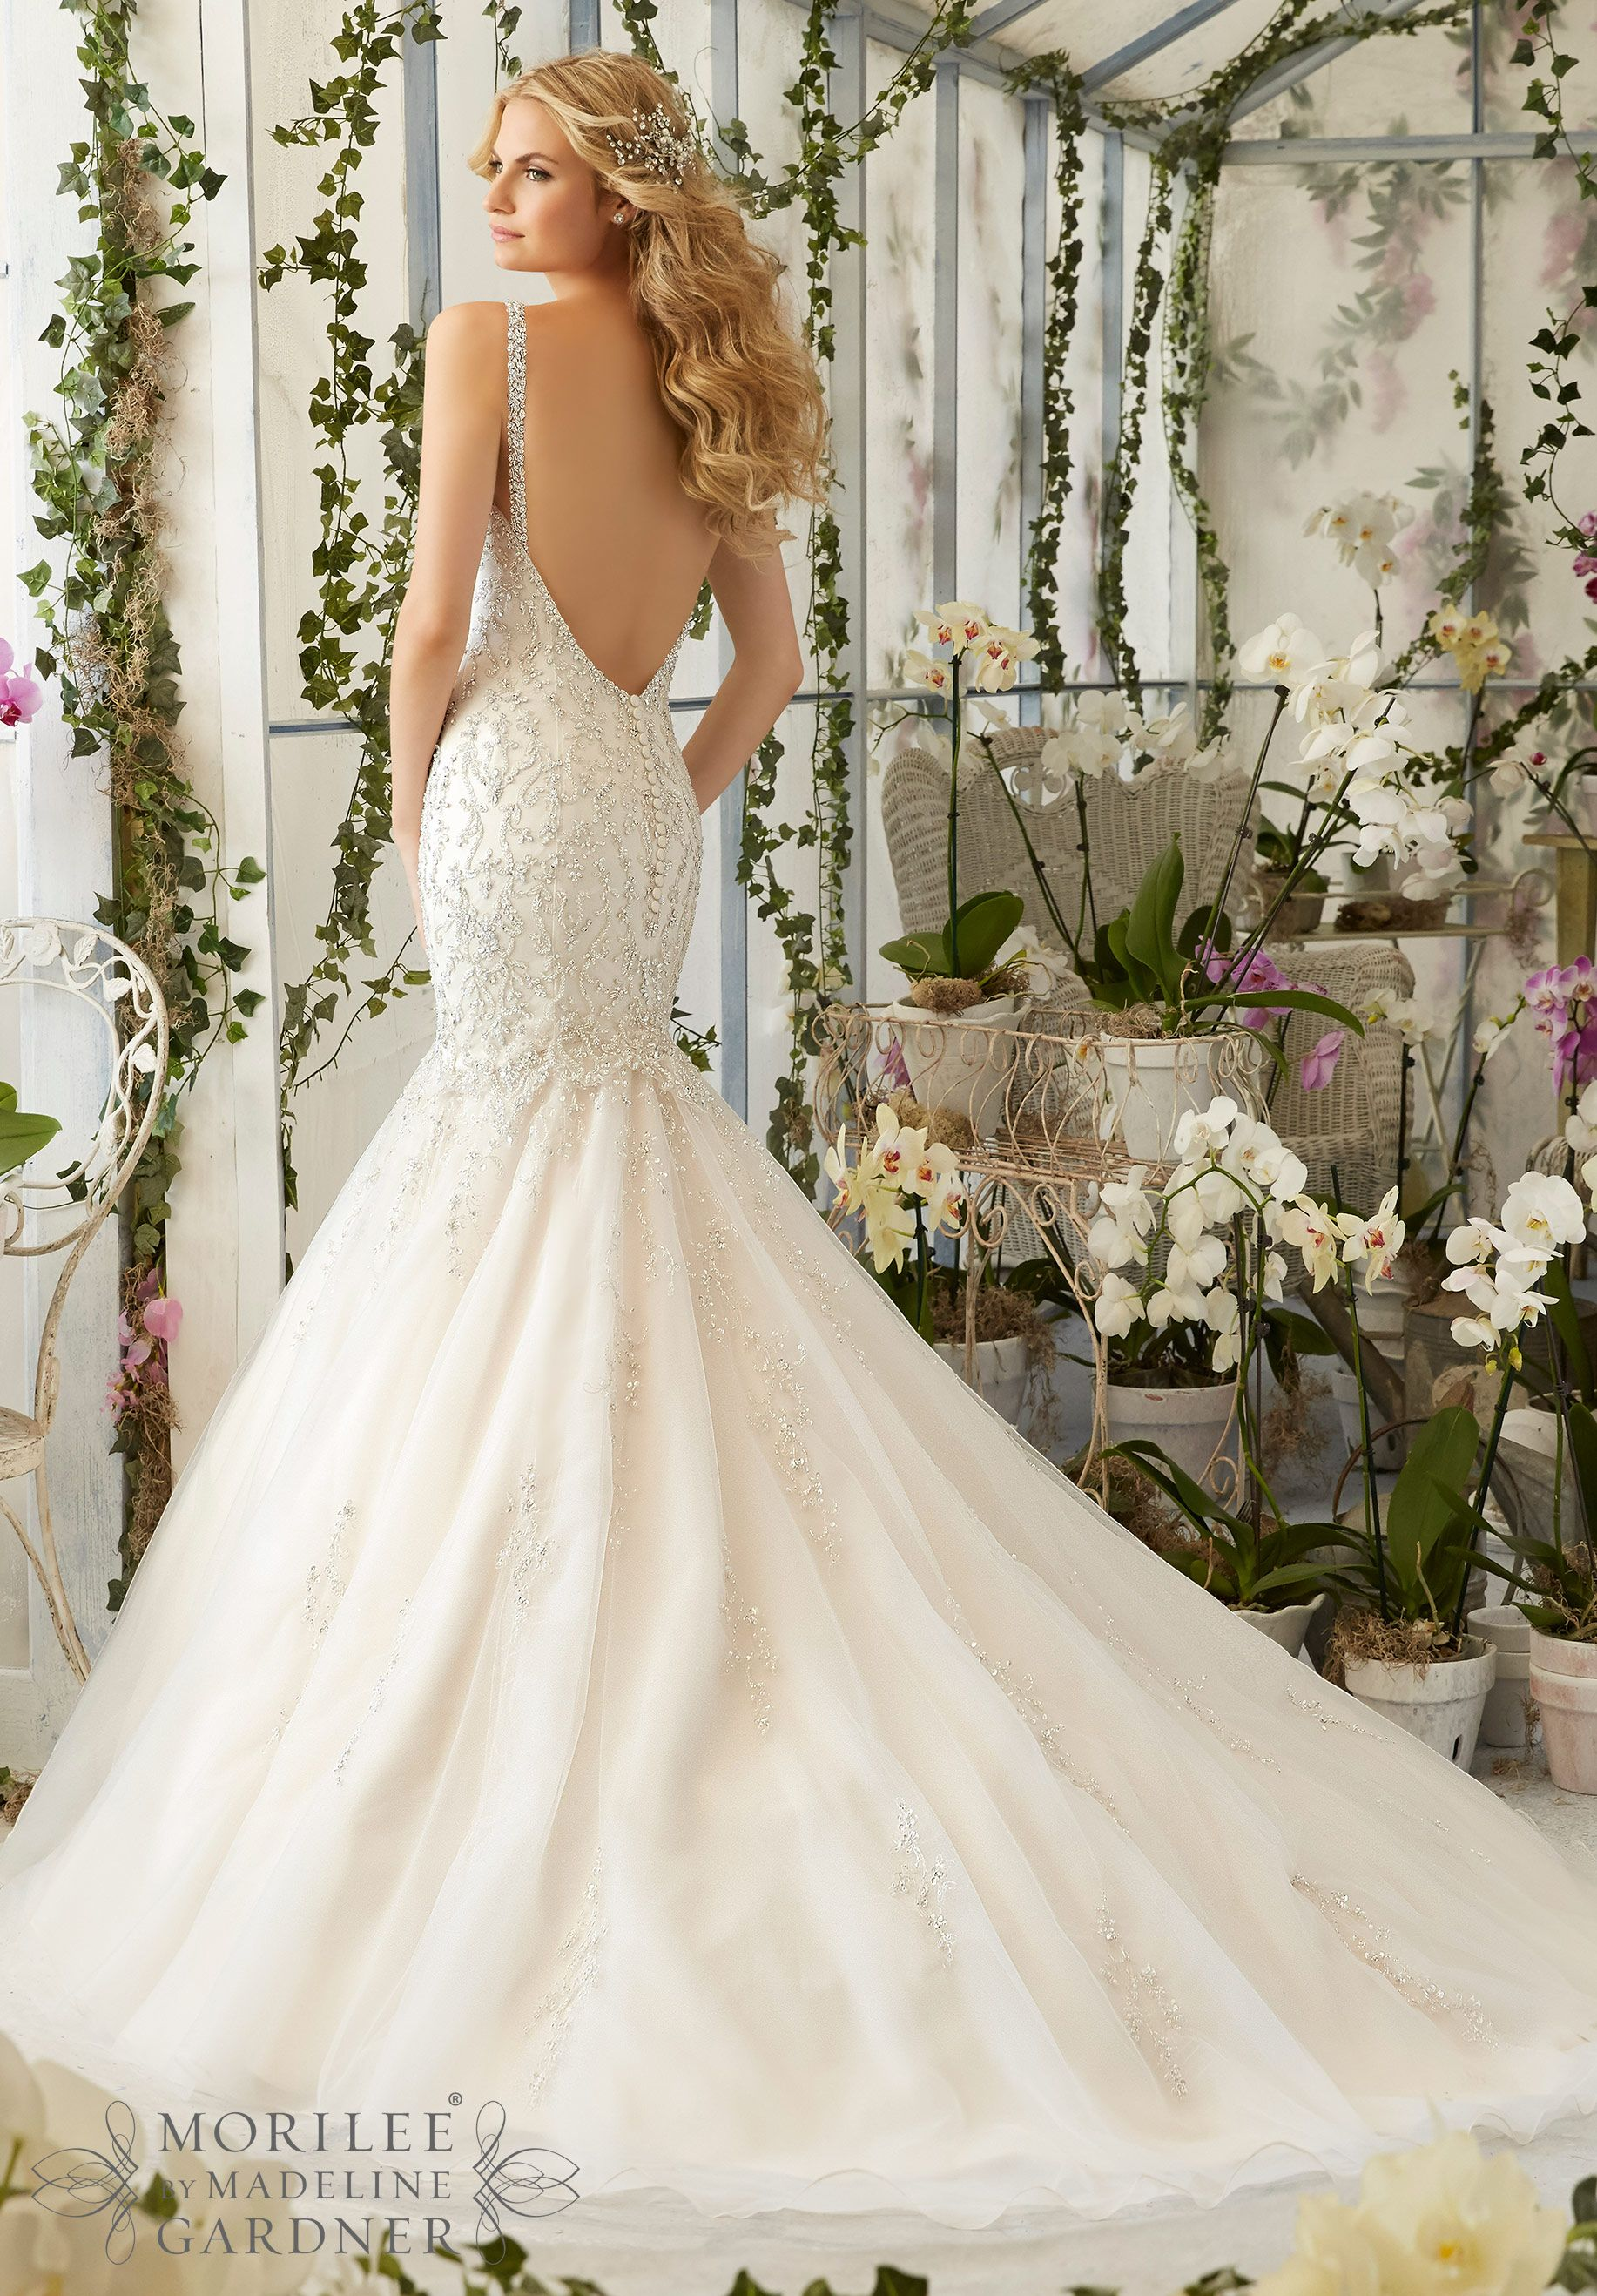 4c73f45cce2d Wedding Dress 2823 Intricate Crystal Beaded Embroidery on the Tulle Mermaid  Gown